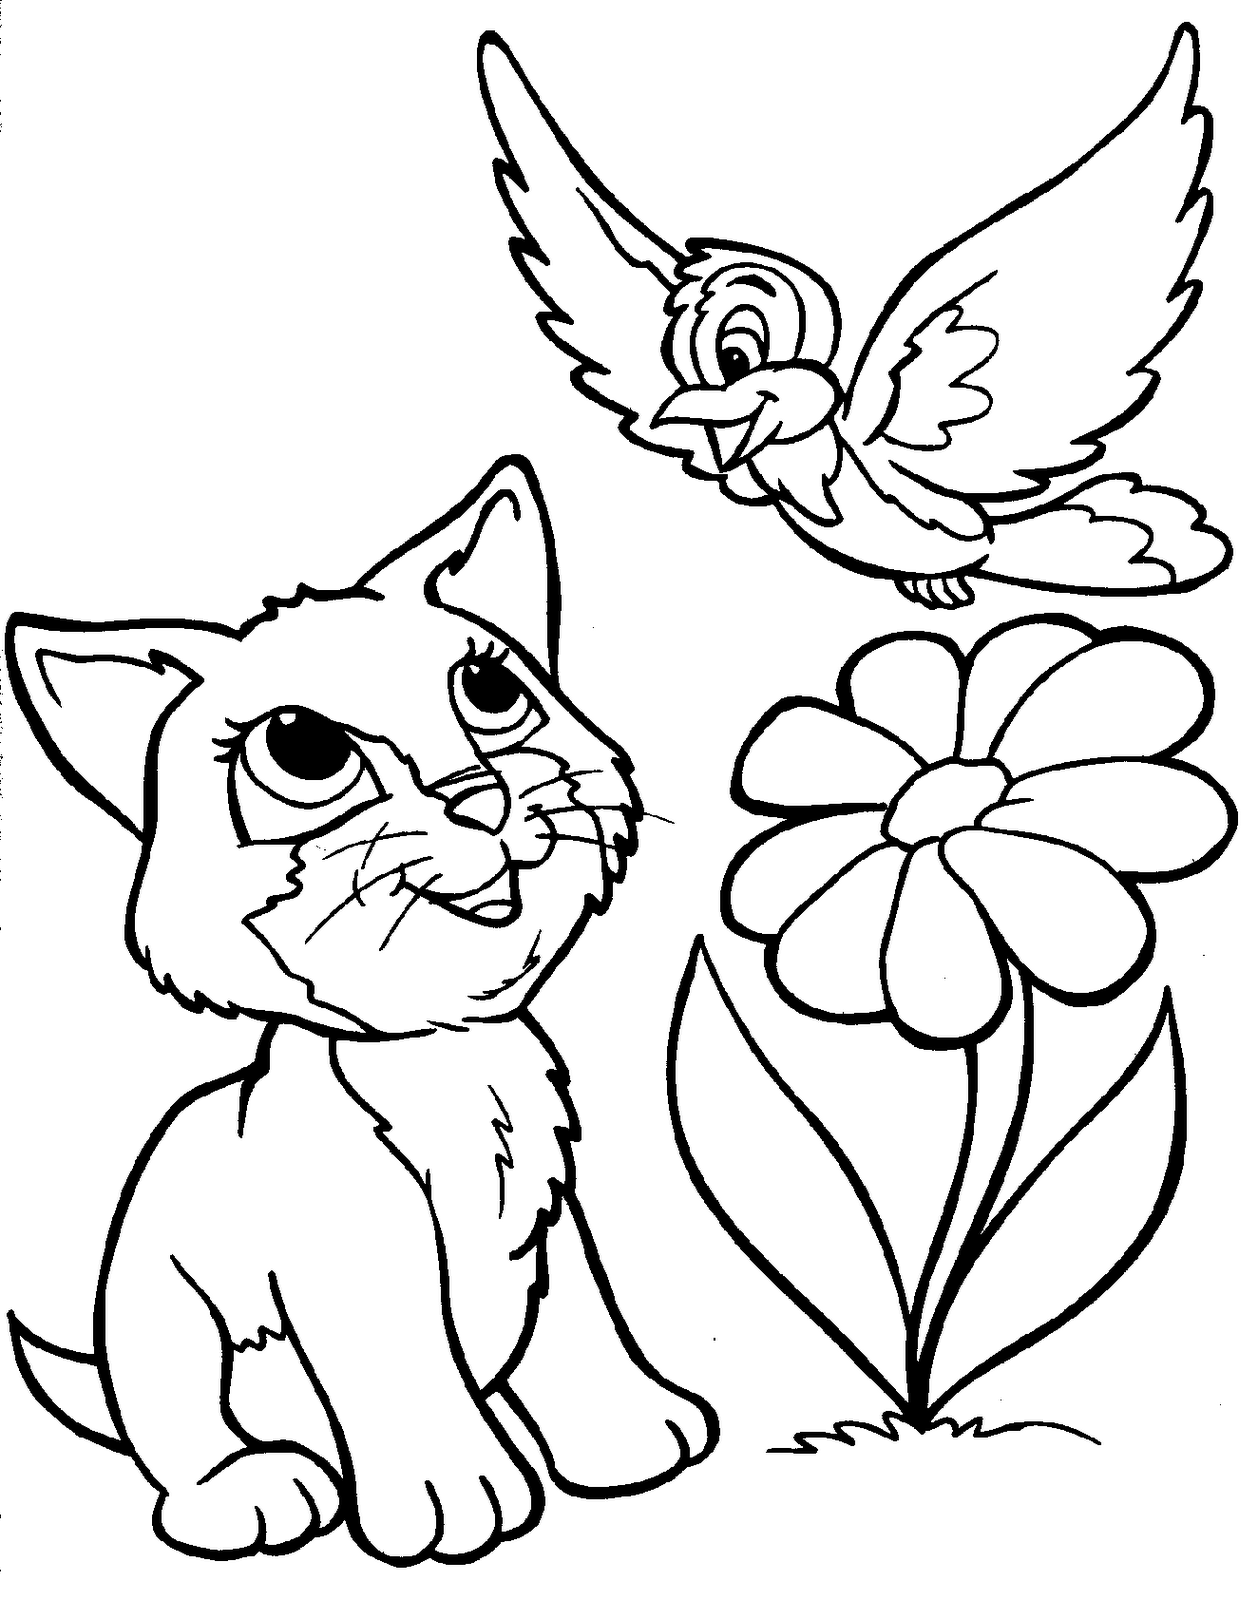 Cartoon animal coloring pages to download and print for free